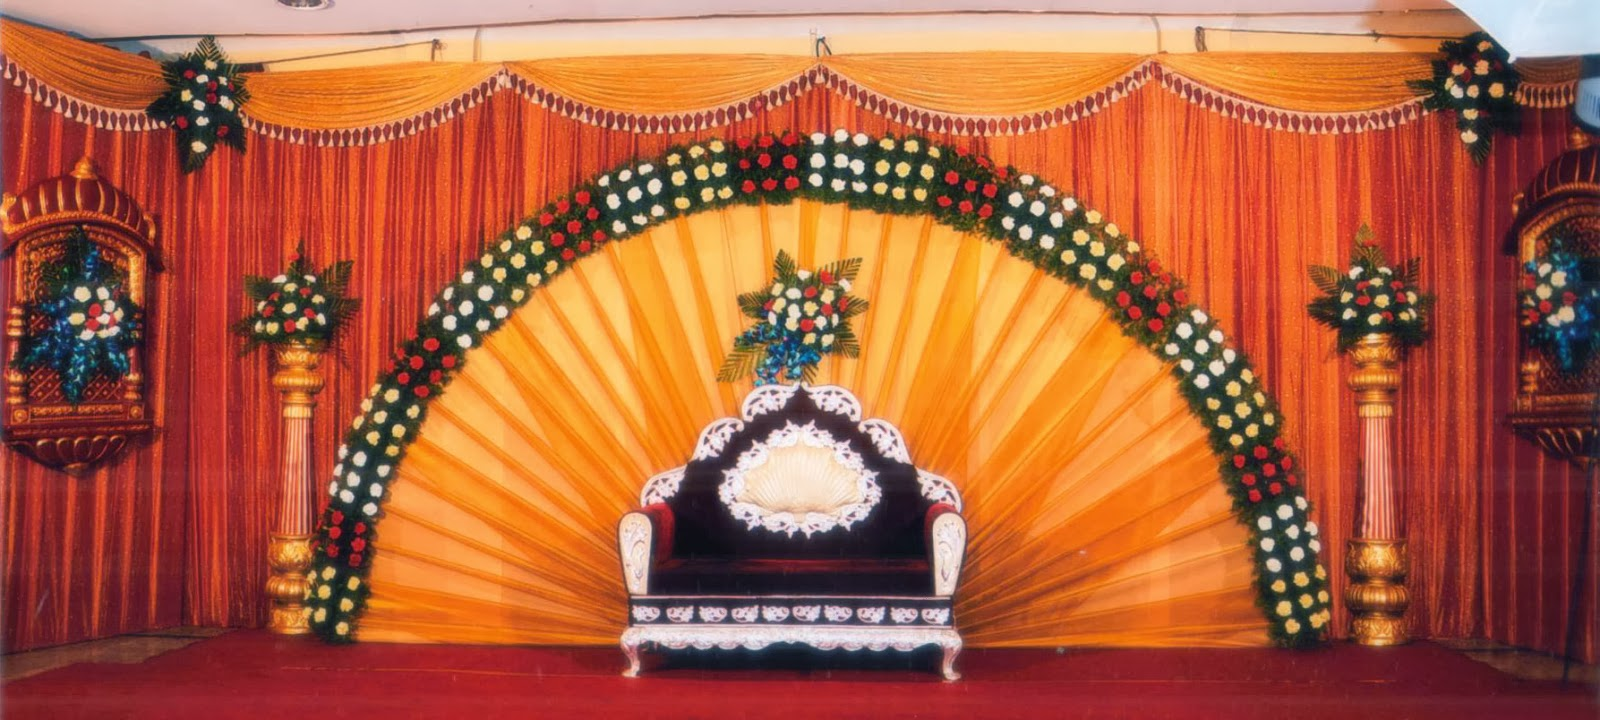 kerala hindu wedding stage decoration photos driverlayer search engine. Black Bedroom Furniture Sets. Home Design Ideas